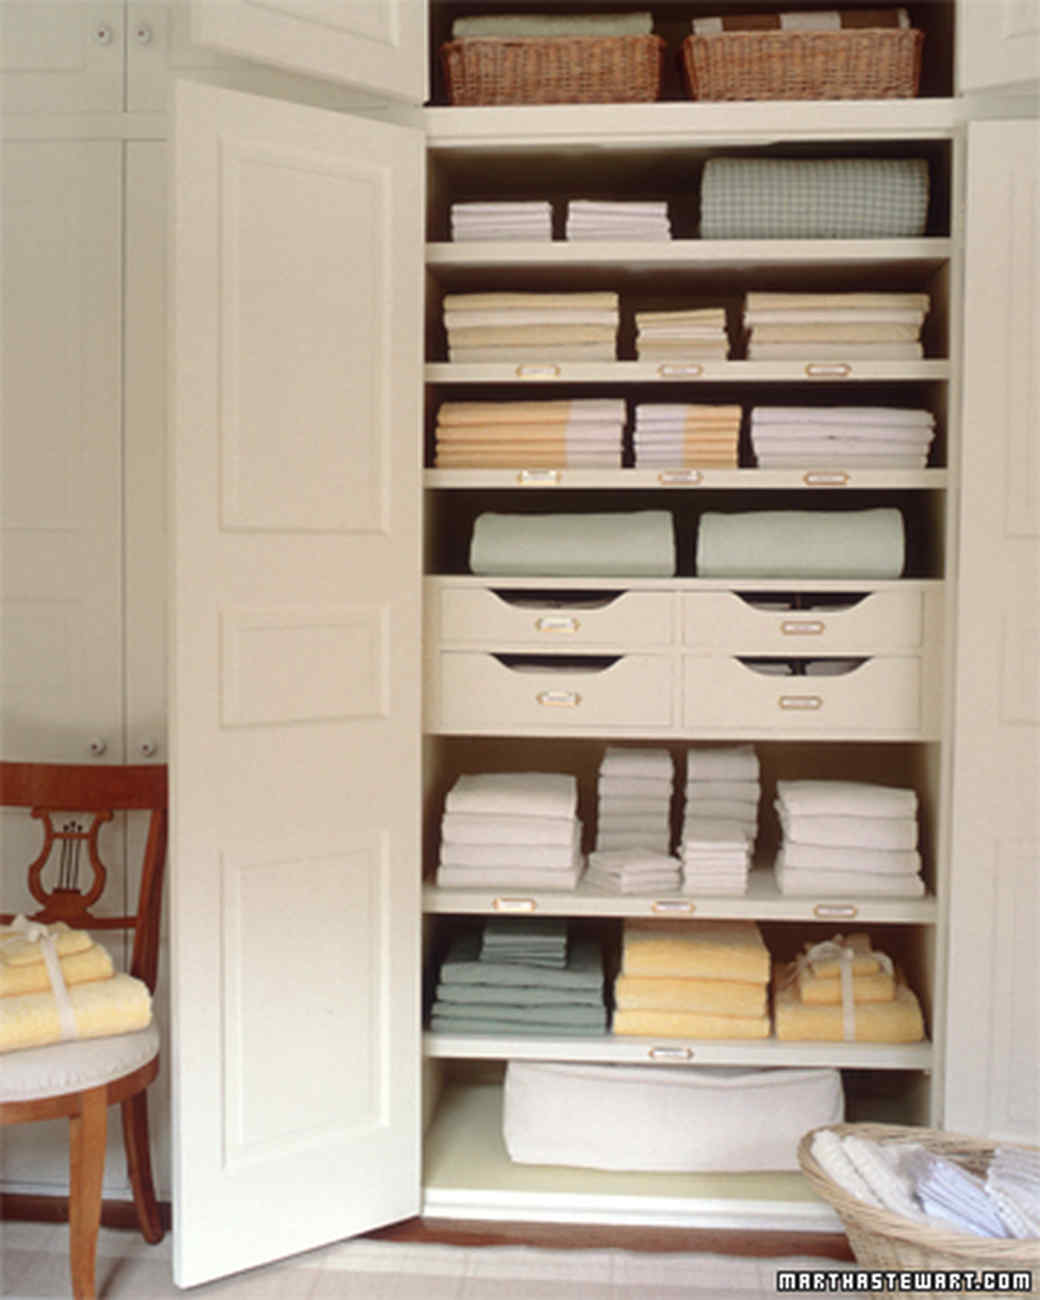 Organizing Your Home | Martha Stewart